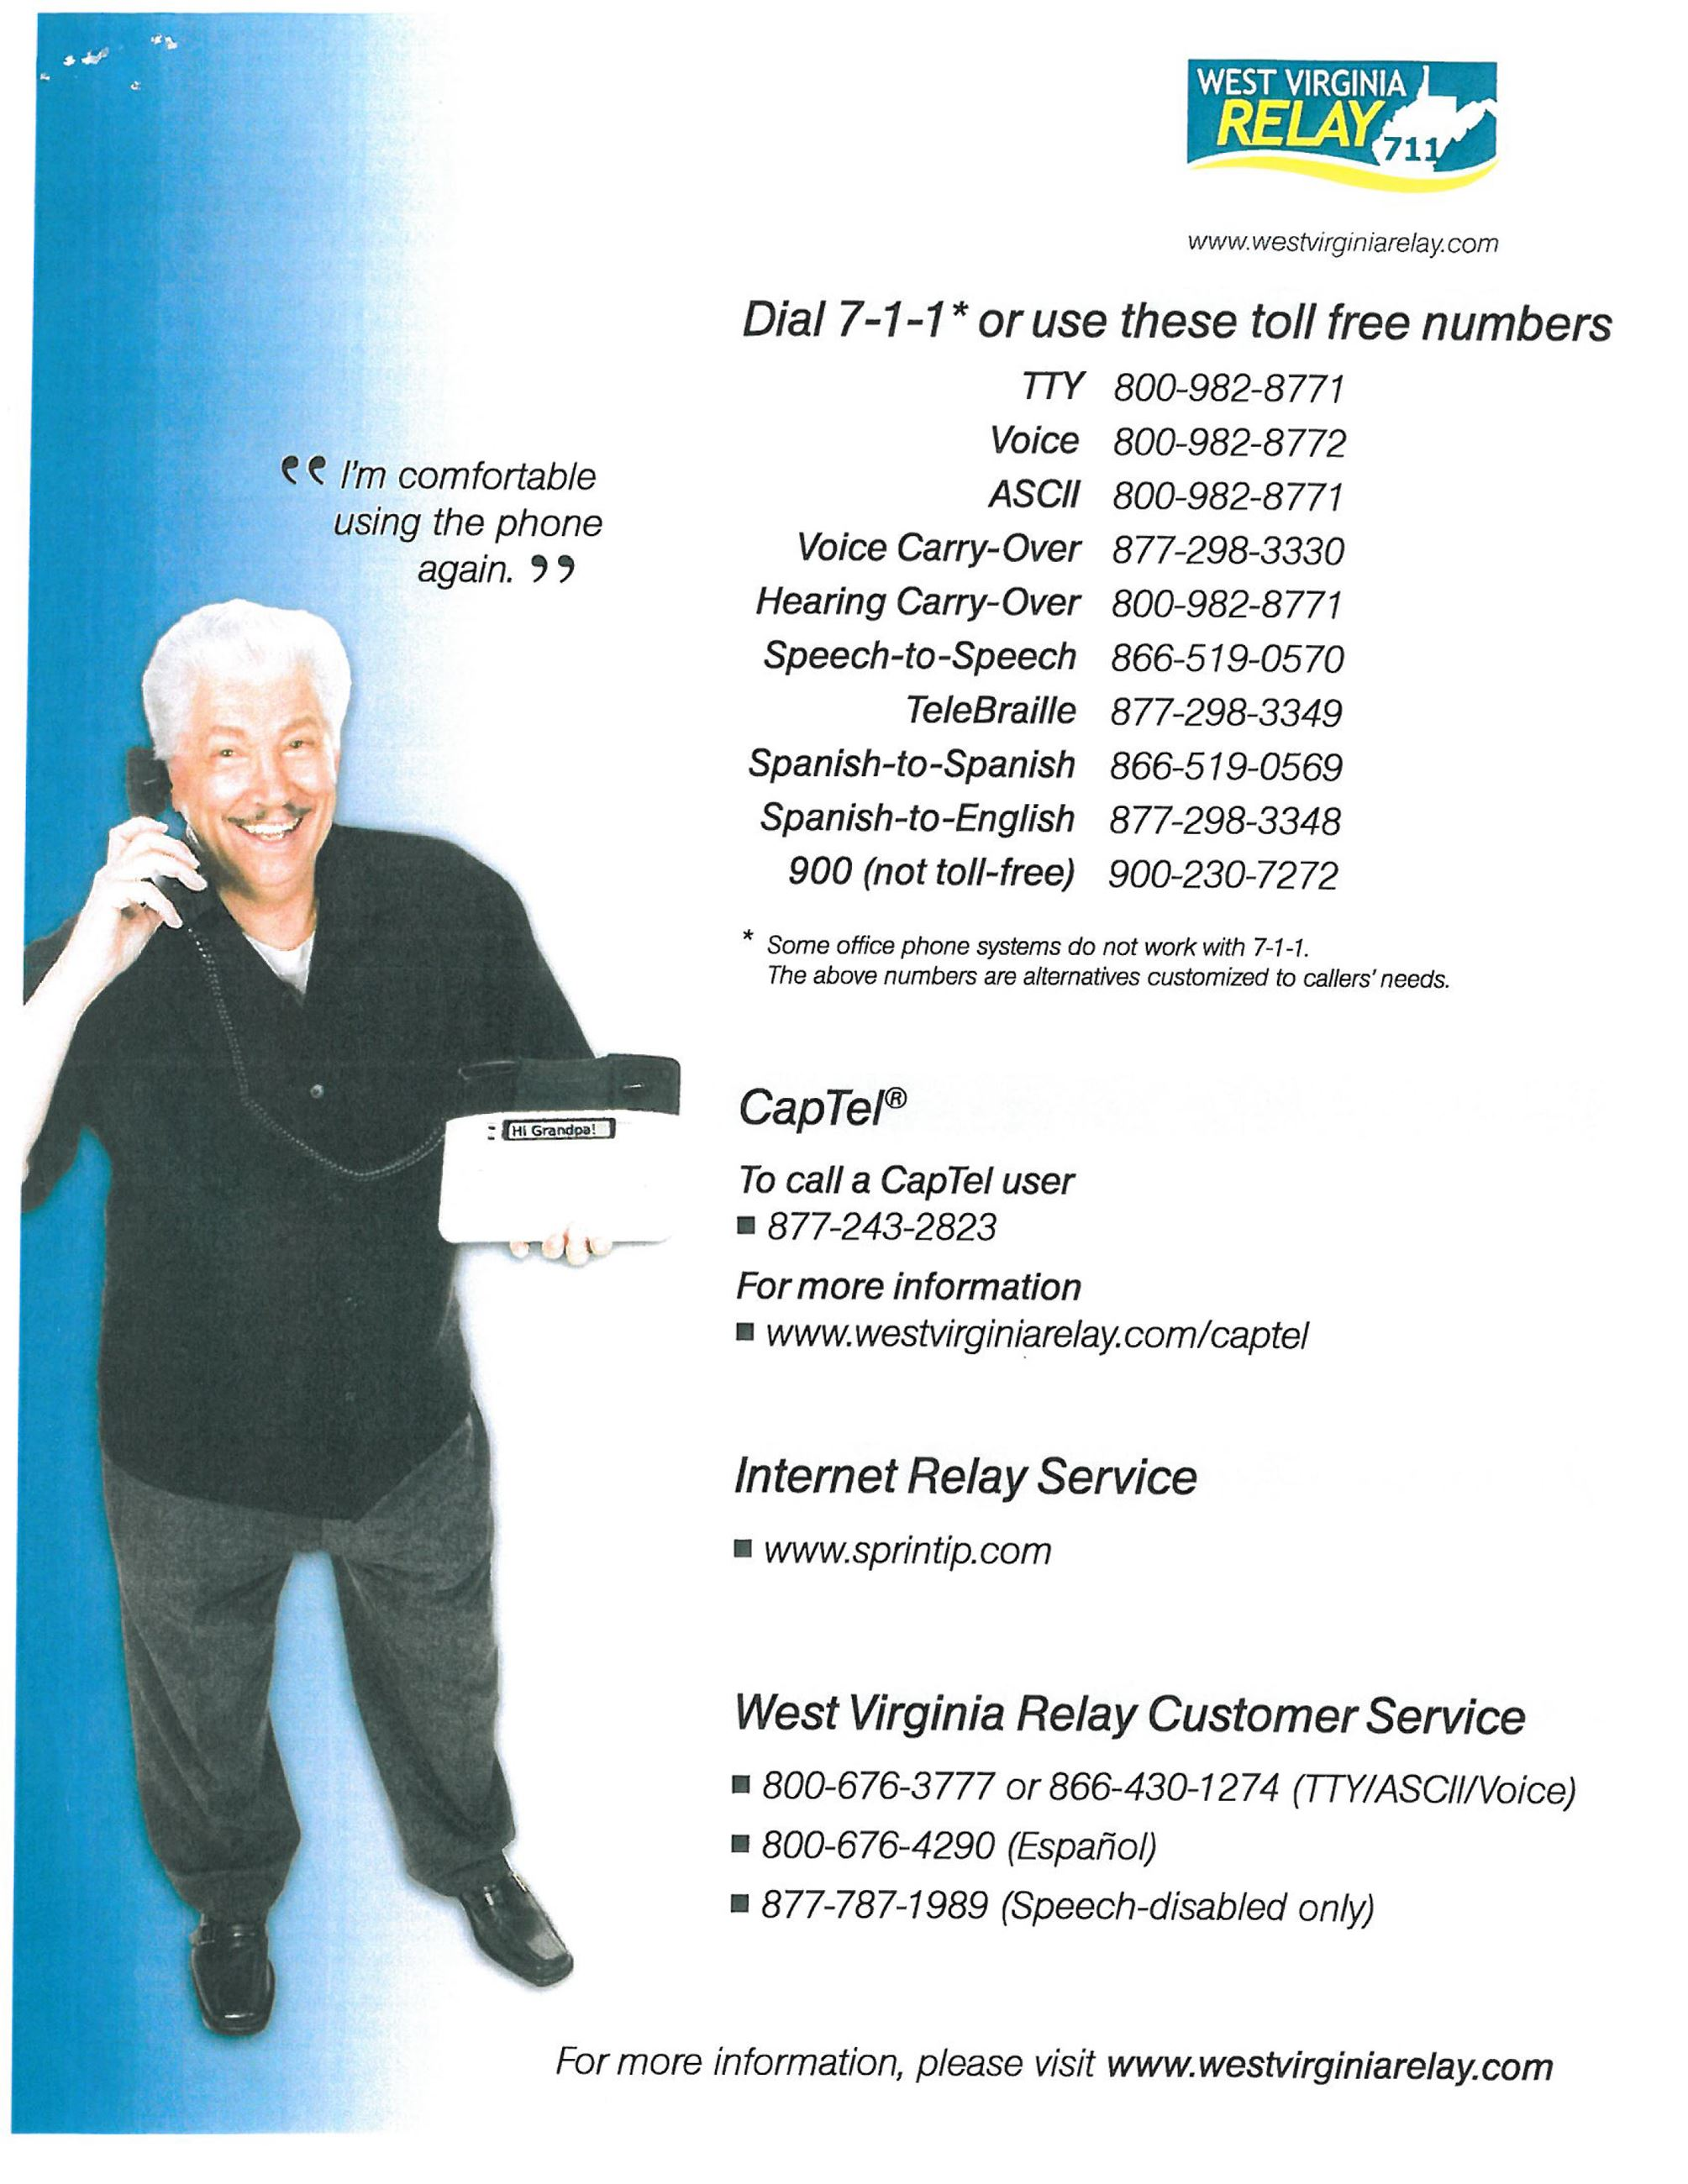 West Virginia Relay Toll Free Numbers